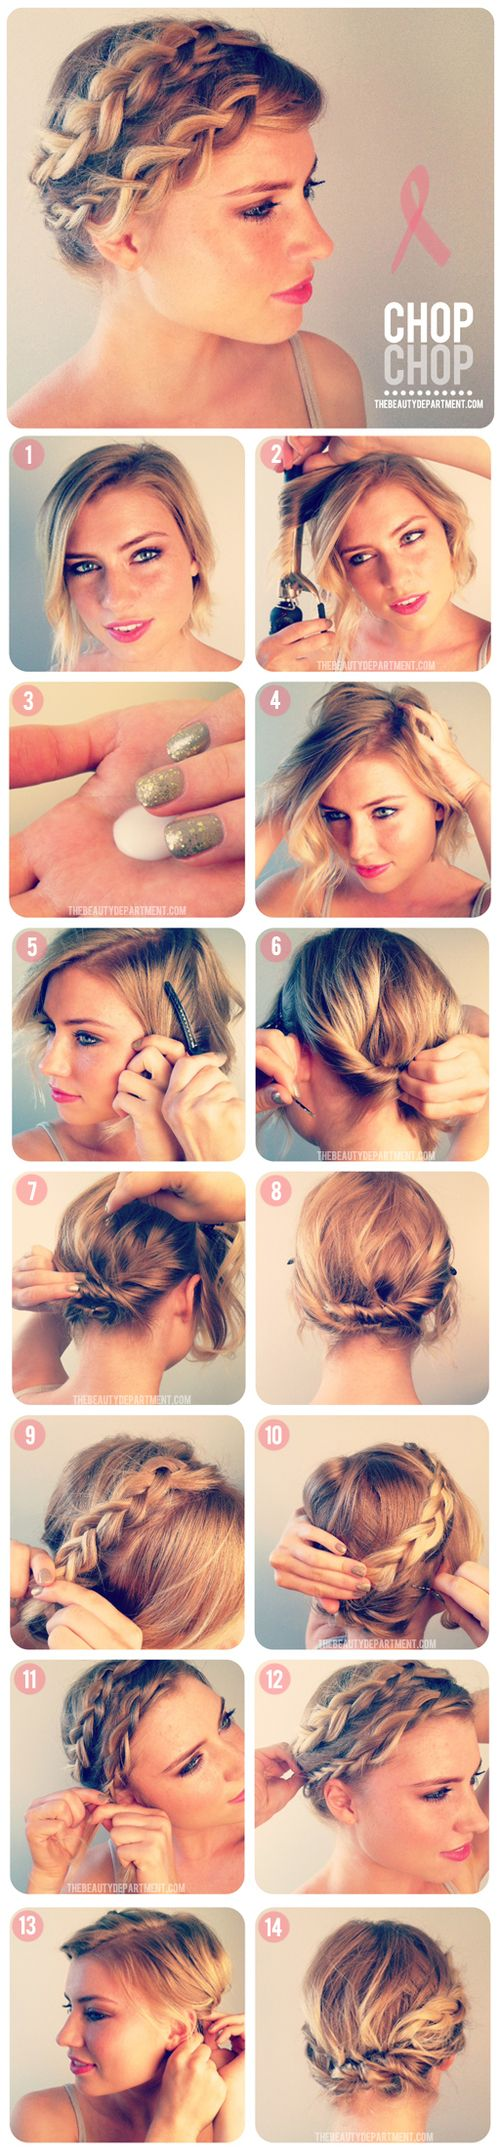 best a rather hairy situation images on pinterest hair cut